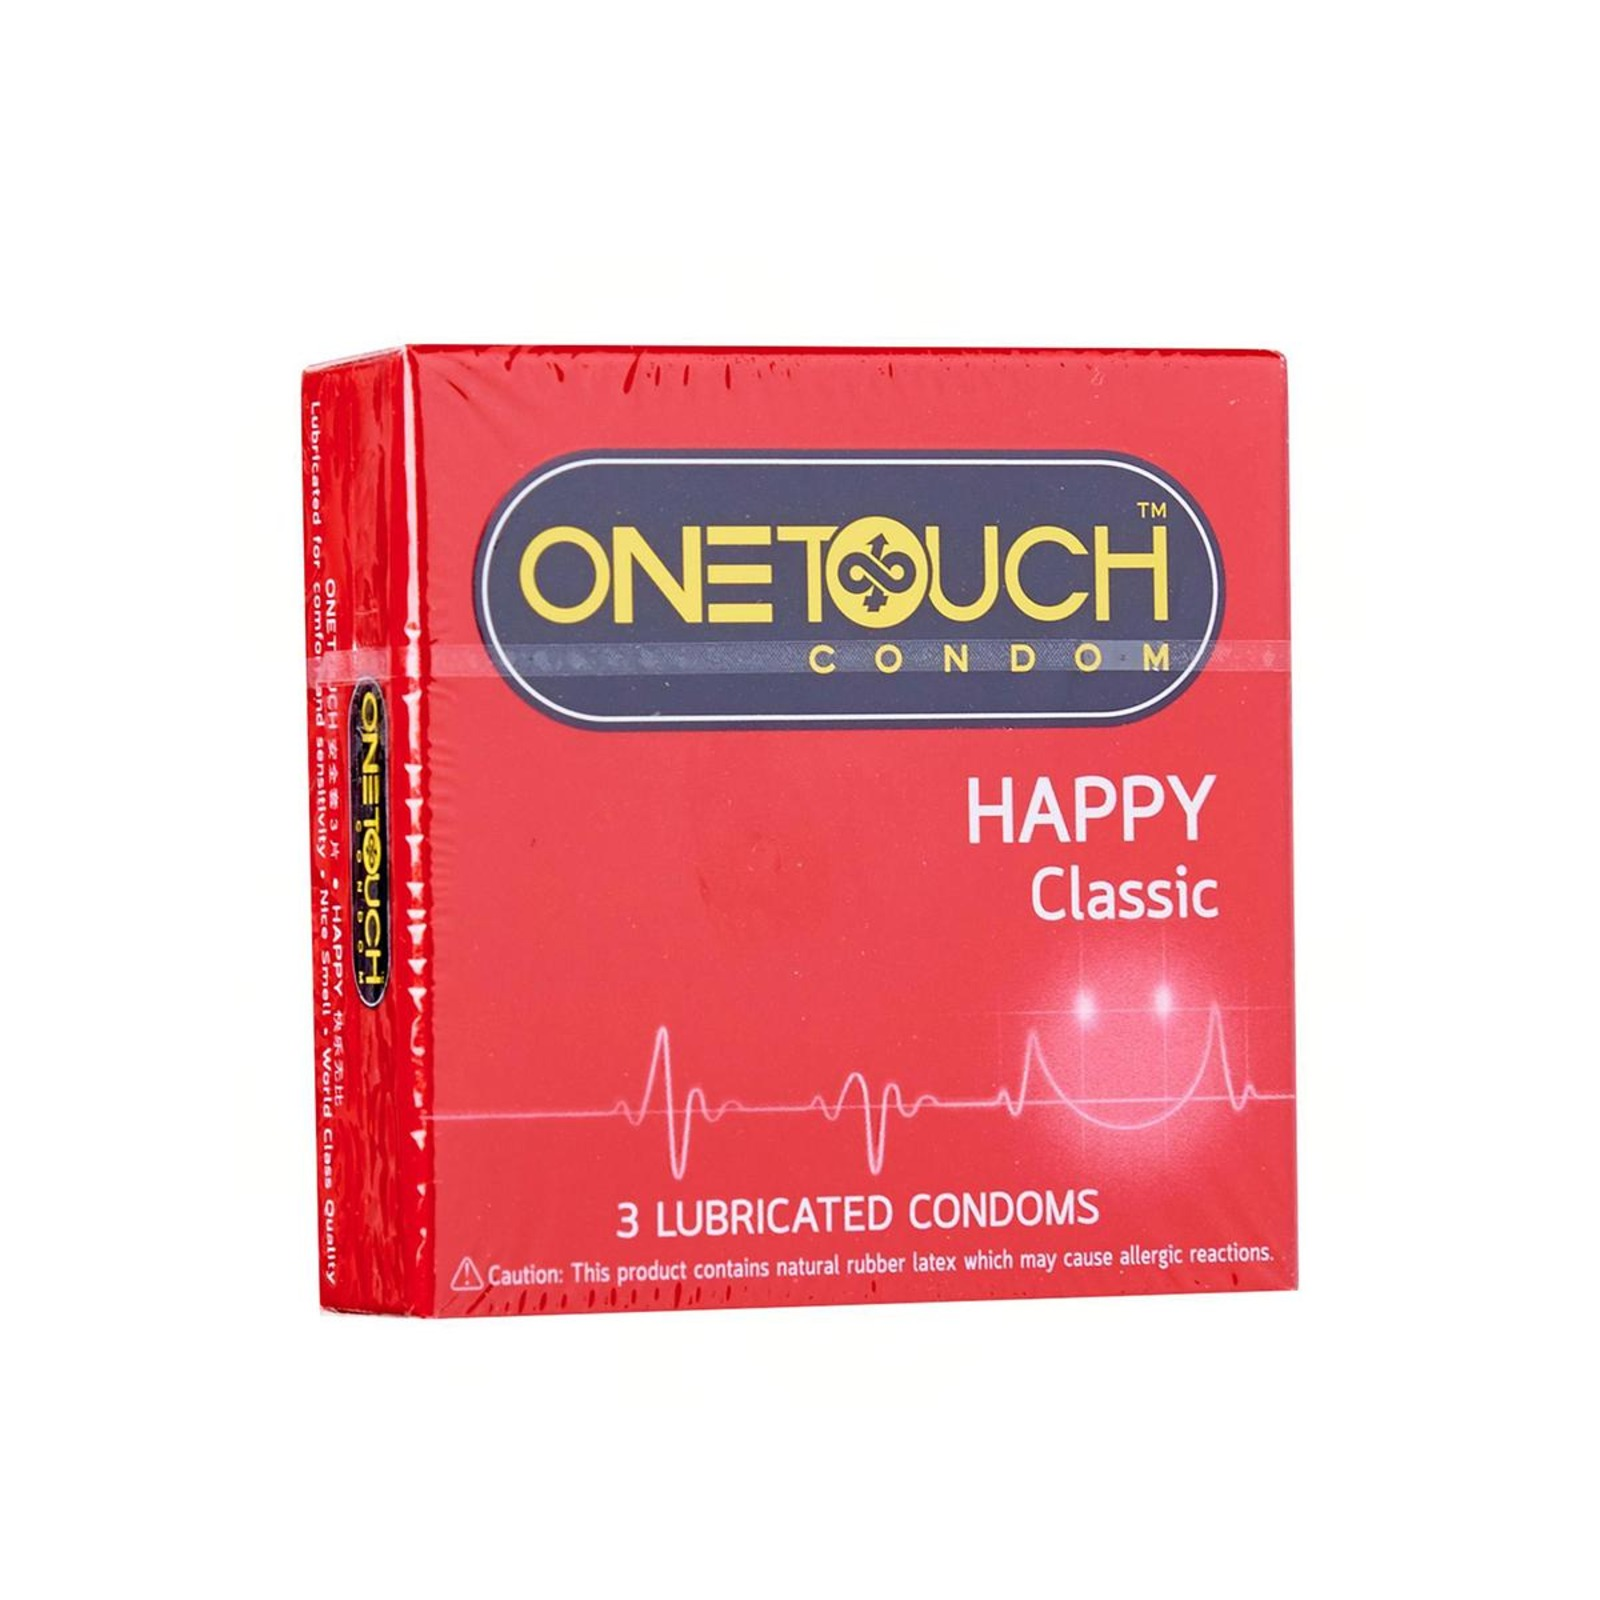 ONE TOUCH Condom - Happy